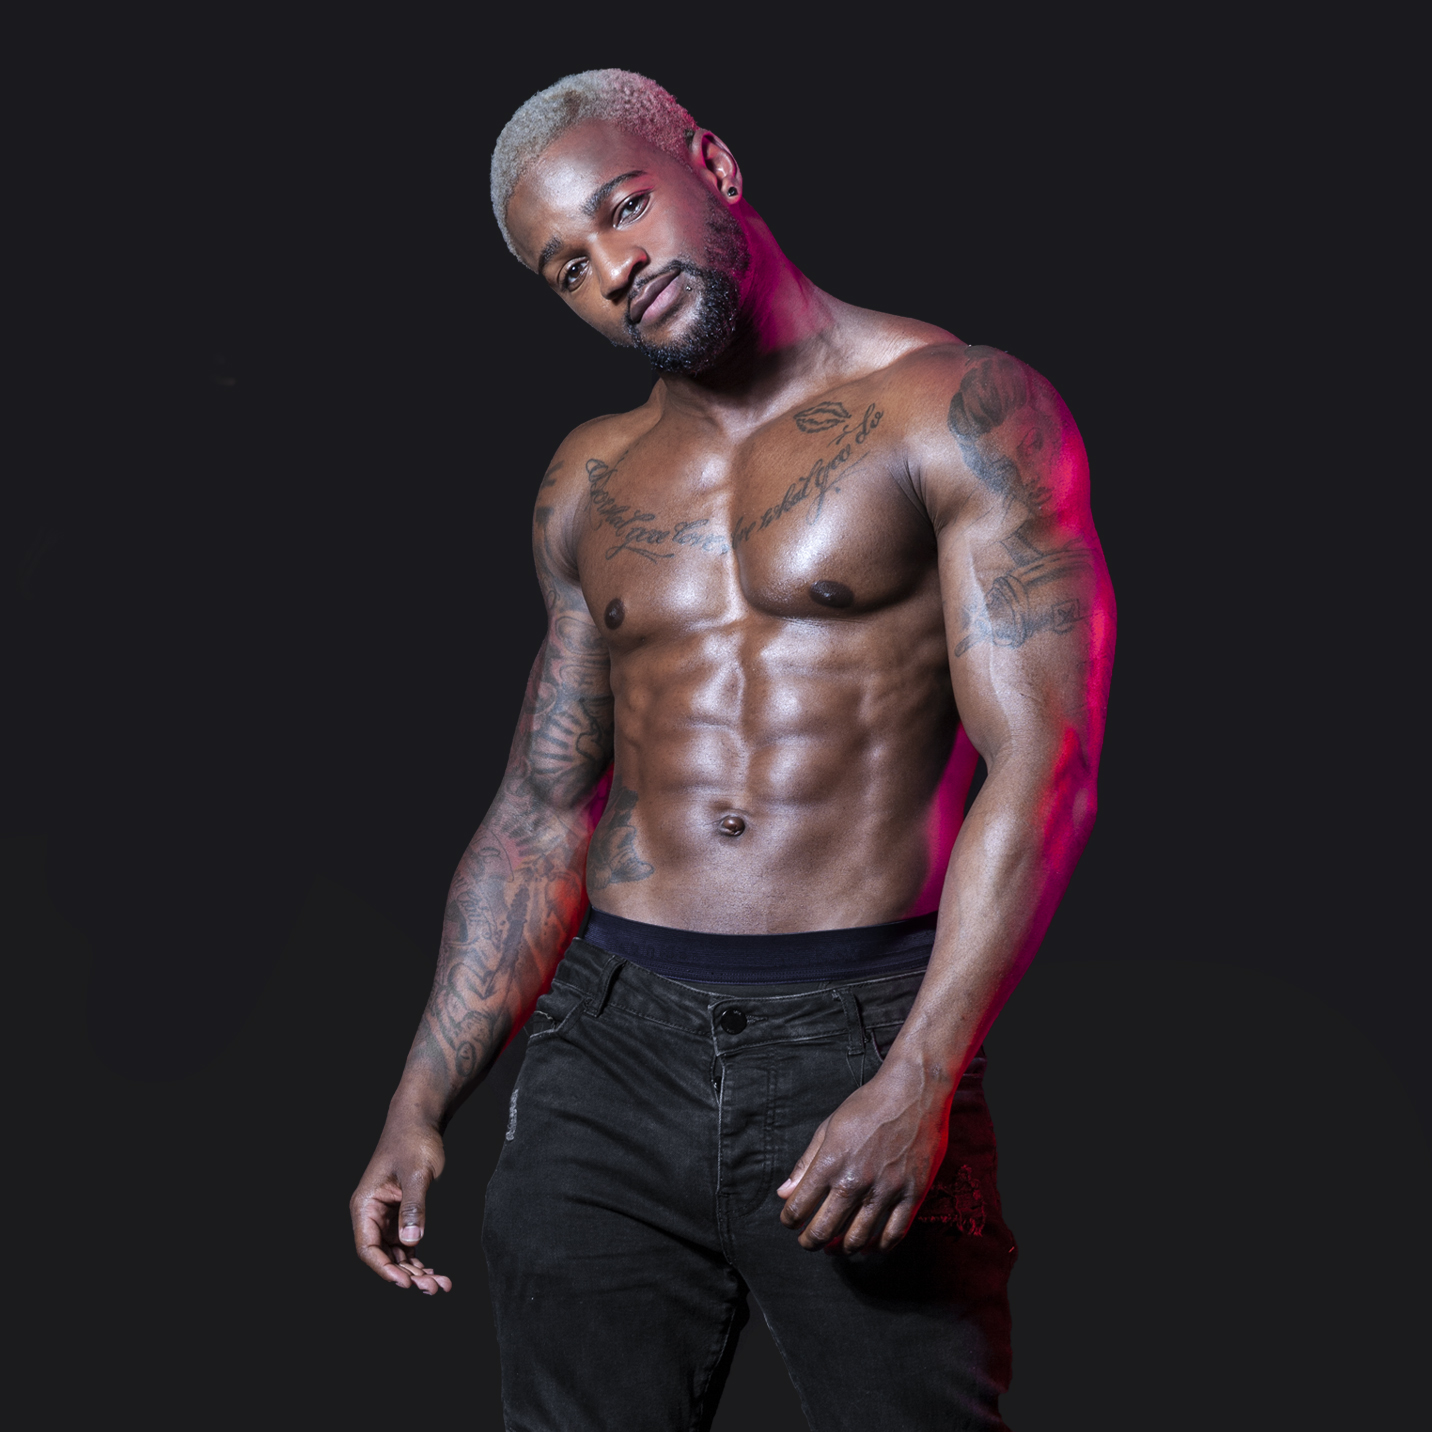 male strippers from the Dreamboys male strip club | Jovan